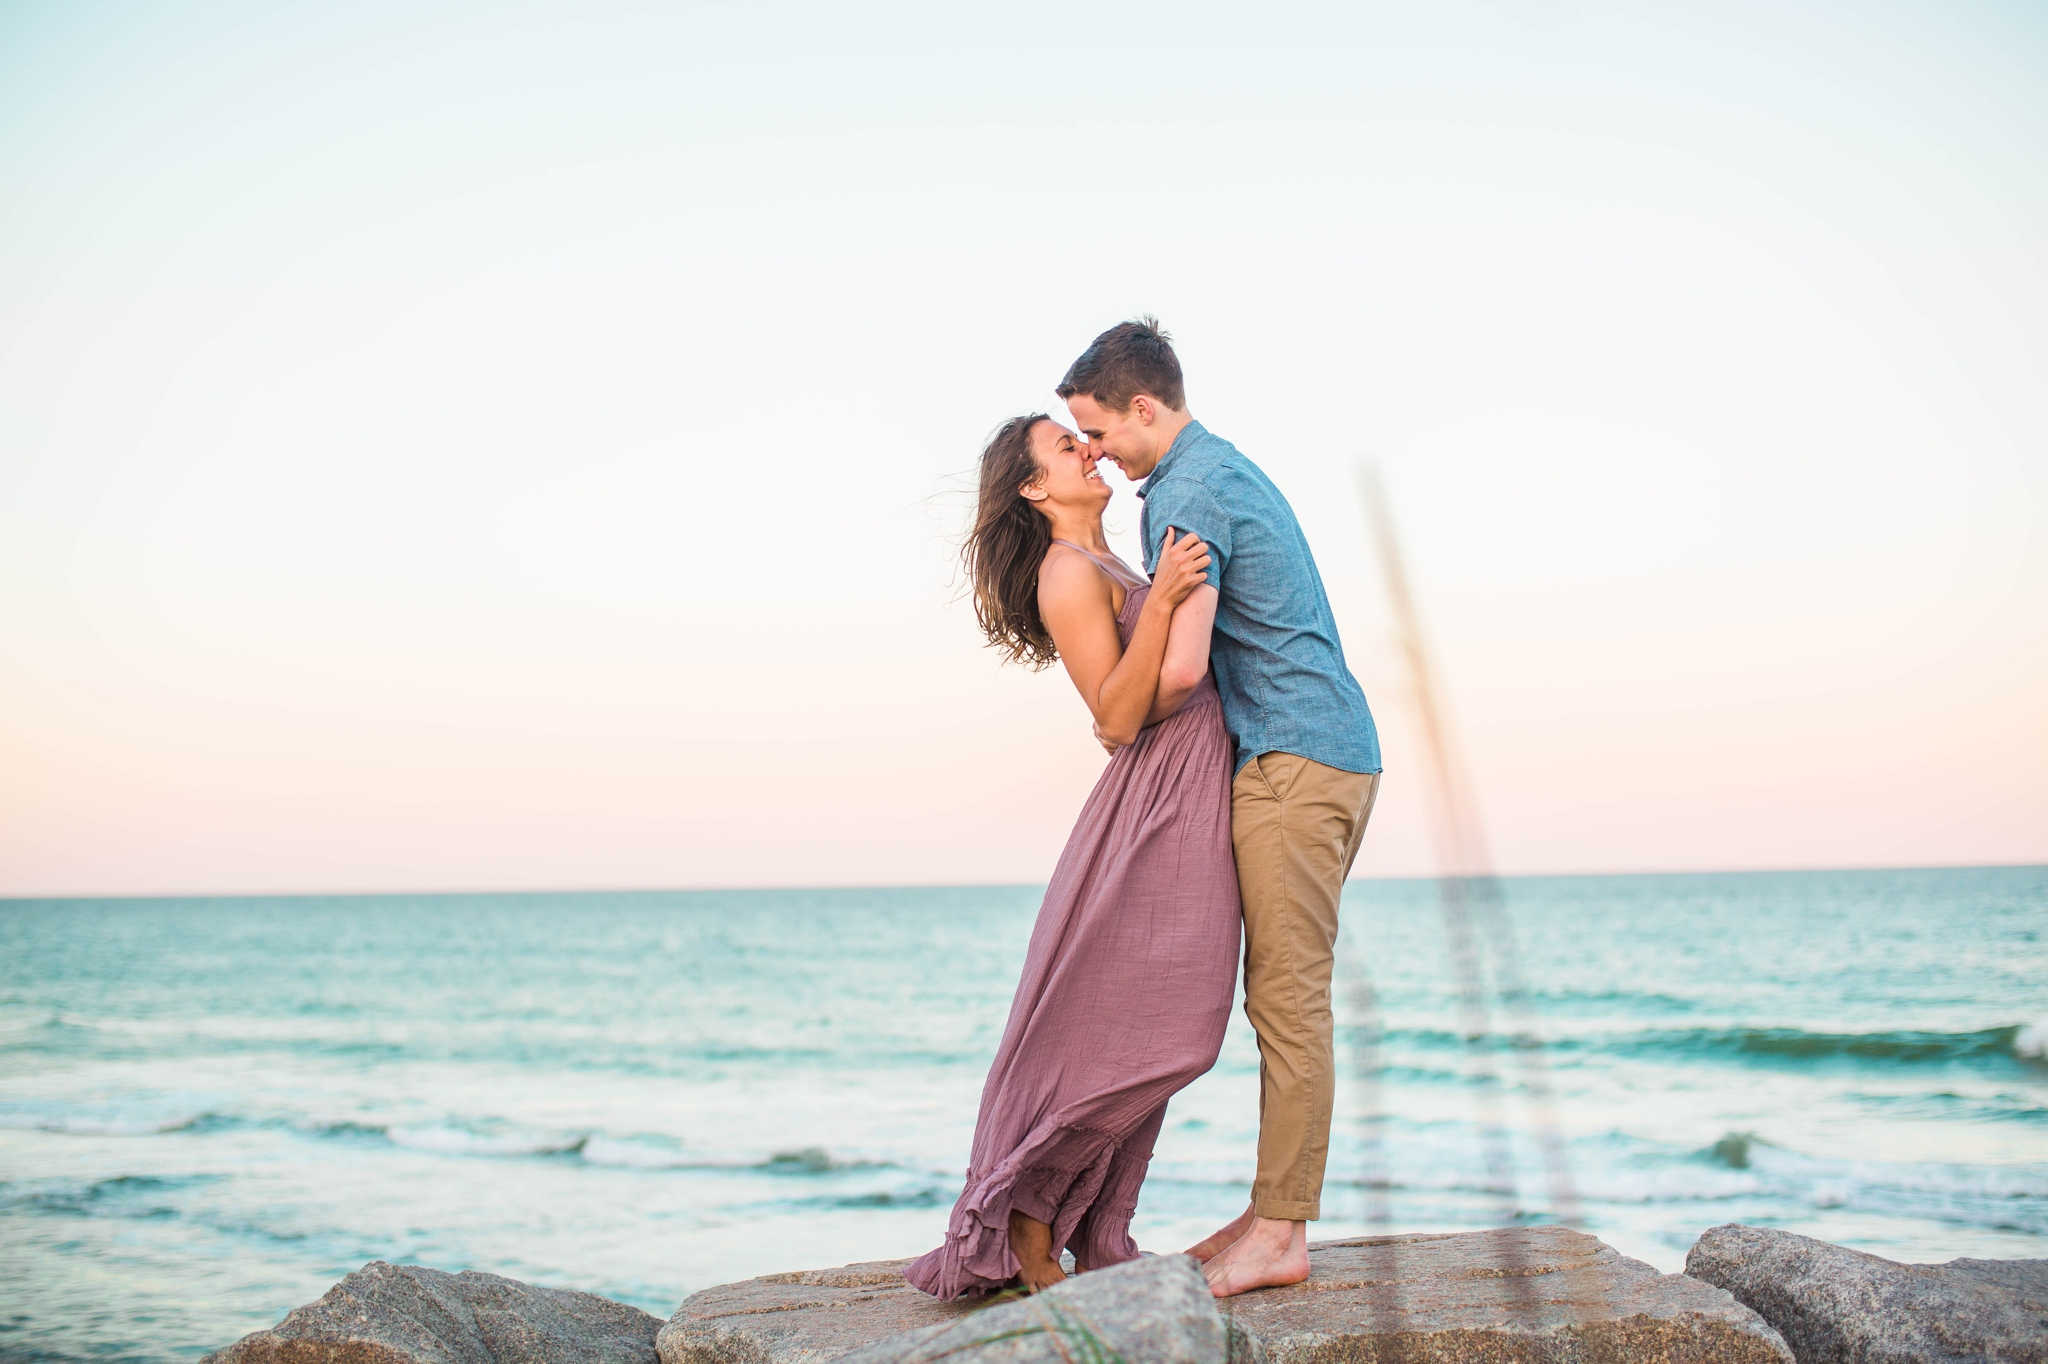 couple on the cliffs kissing - Woman is in a flowy pastel maxi dress - candid and unposed golden light session - beach engagement photographer in honolulu, oahu, hawaii - johanna dye photography